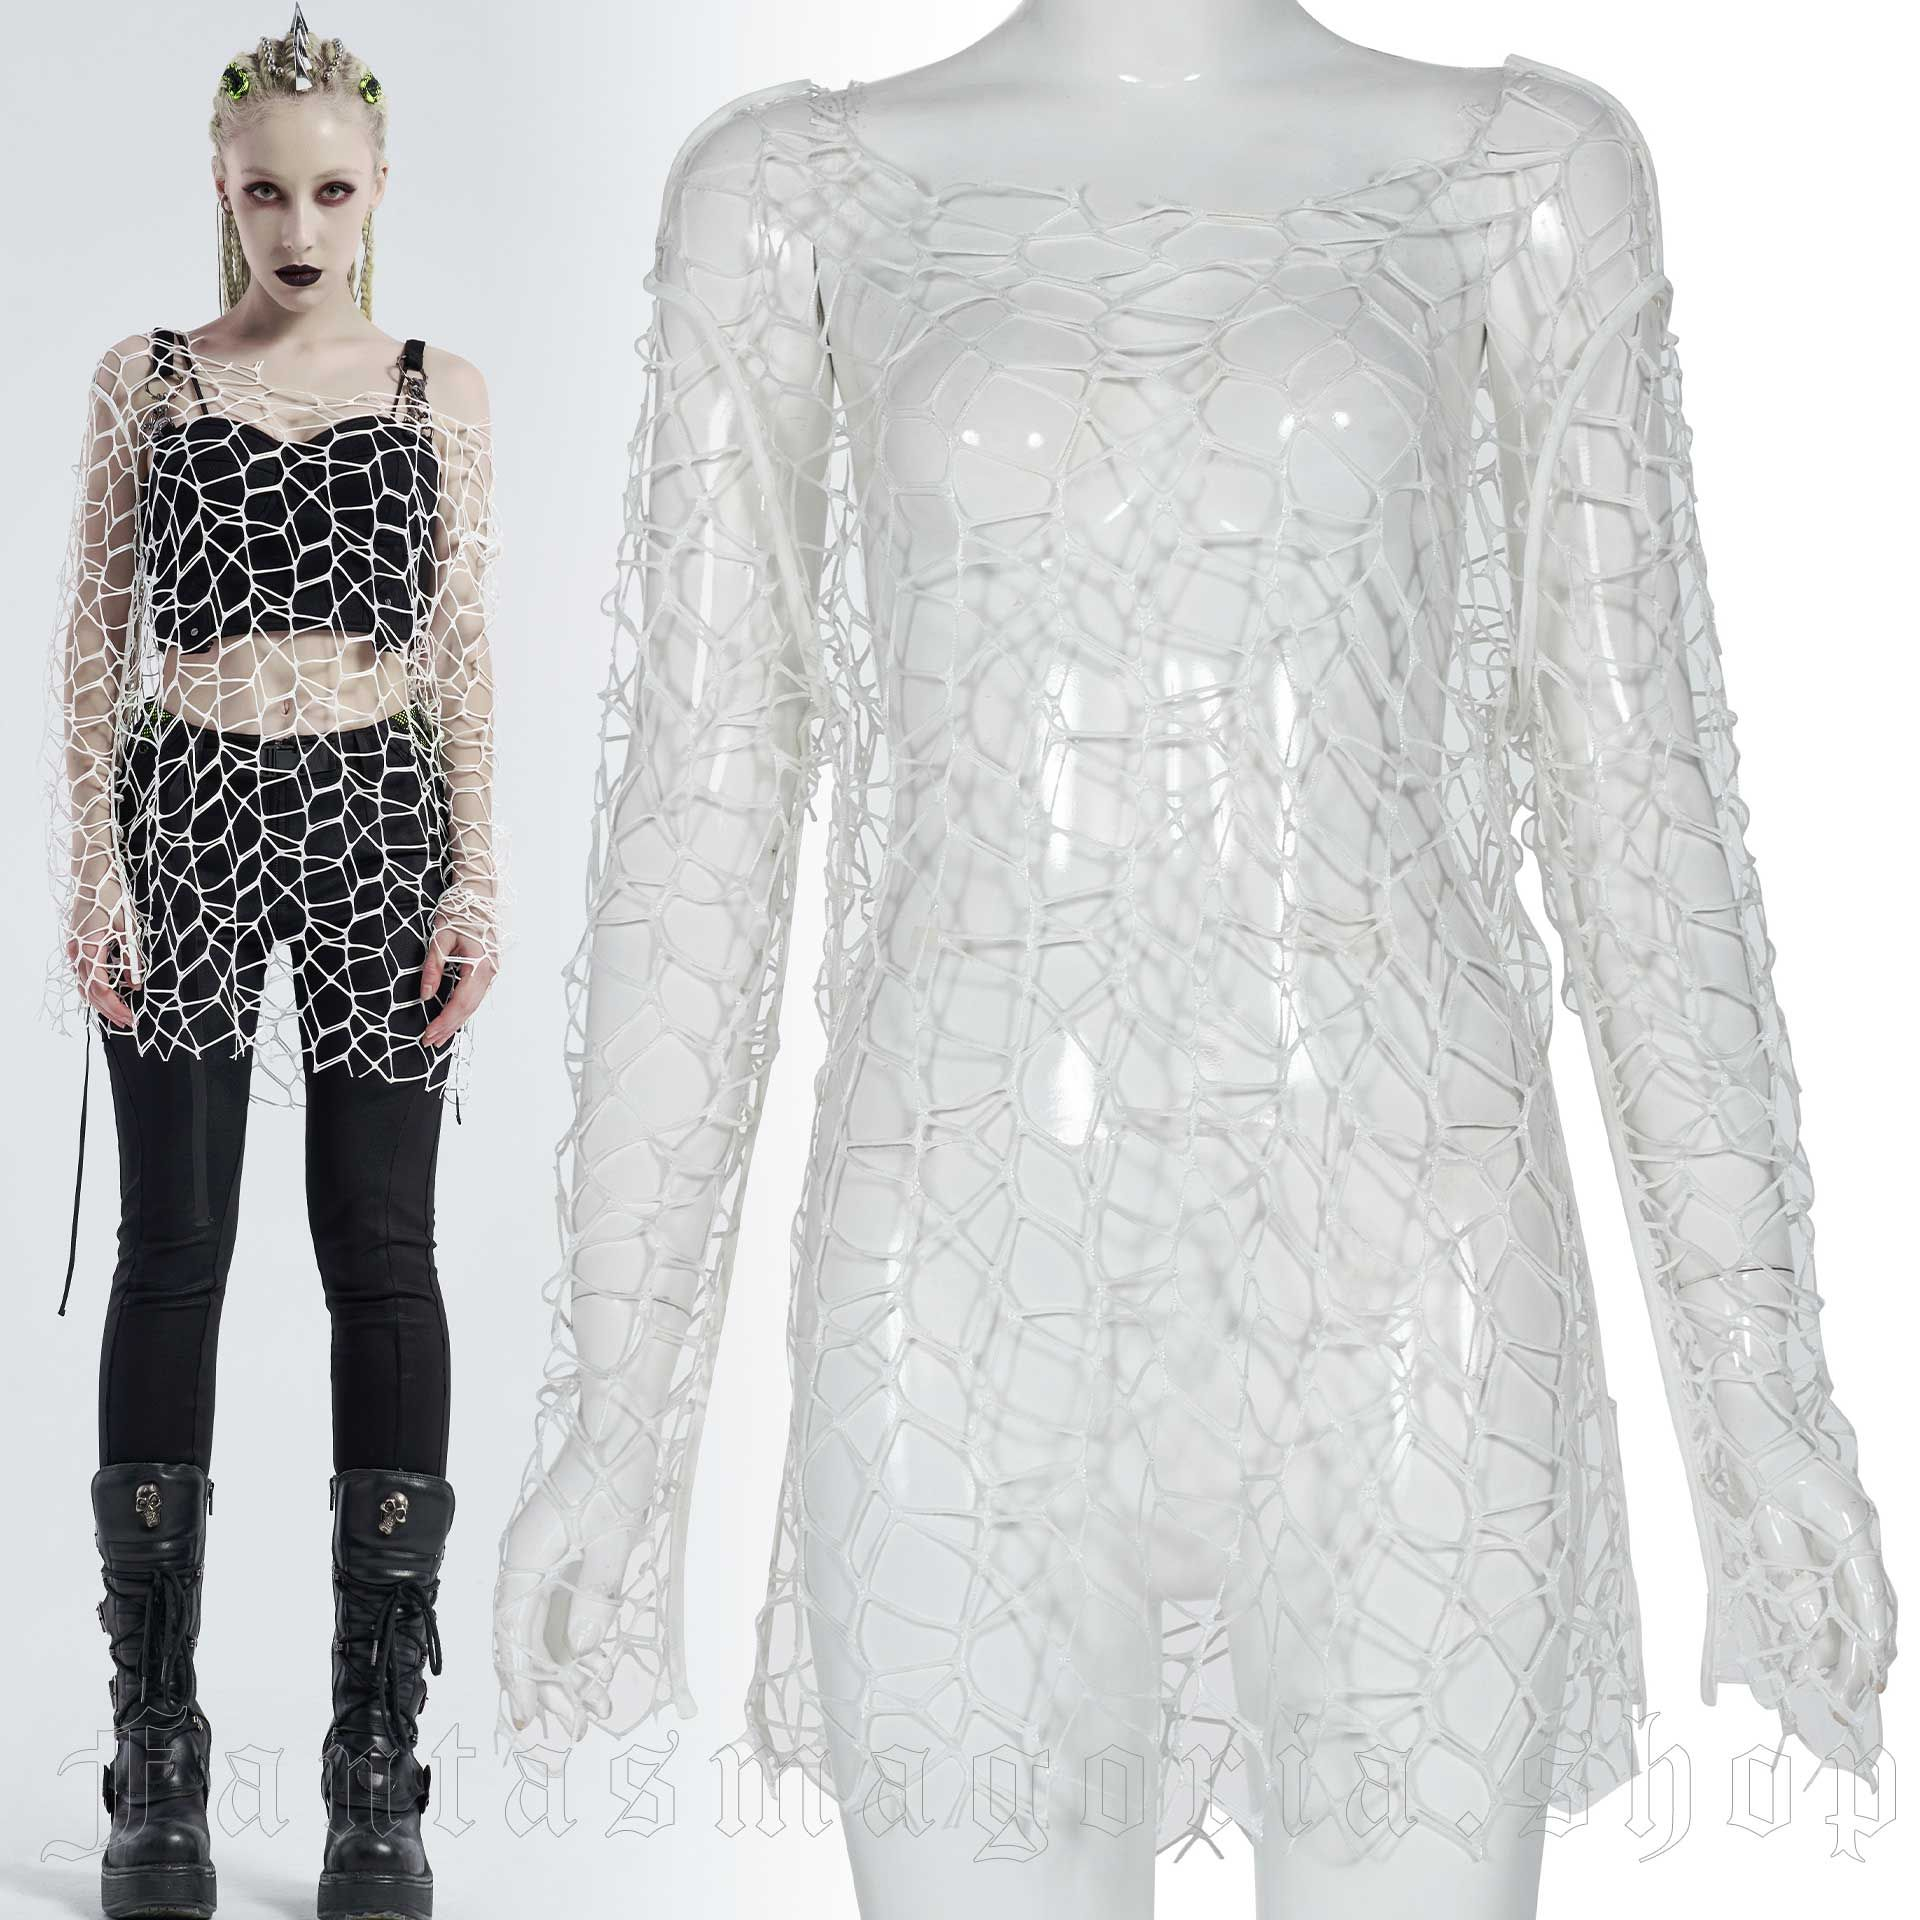 Cataclysm White Mesh Top